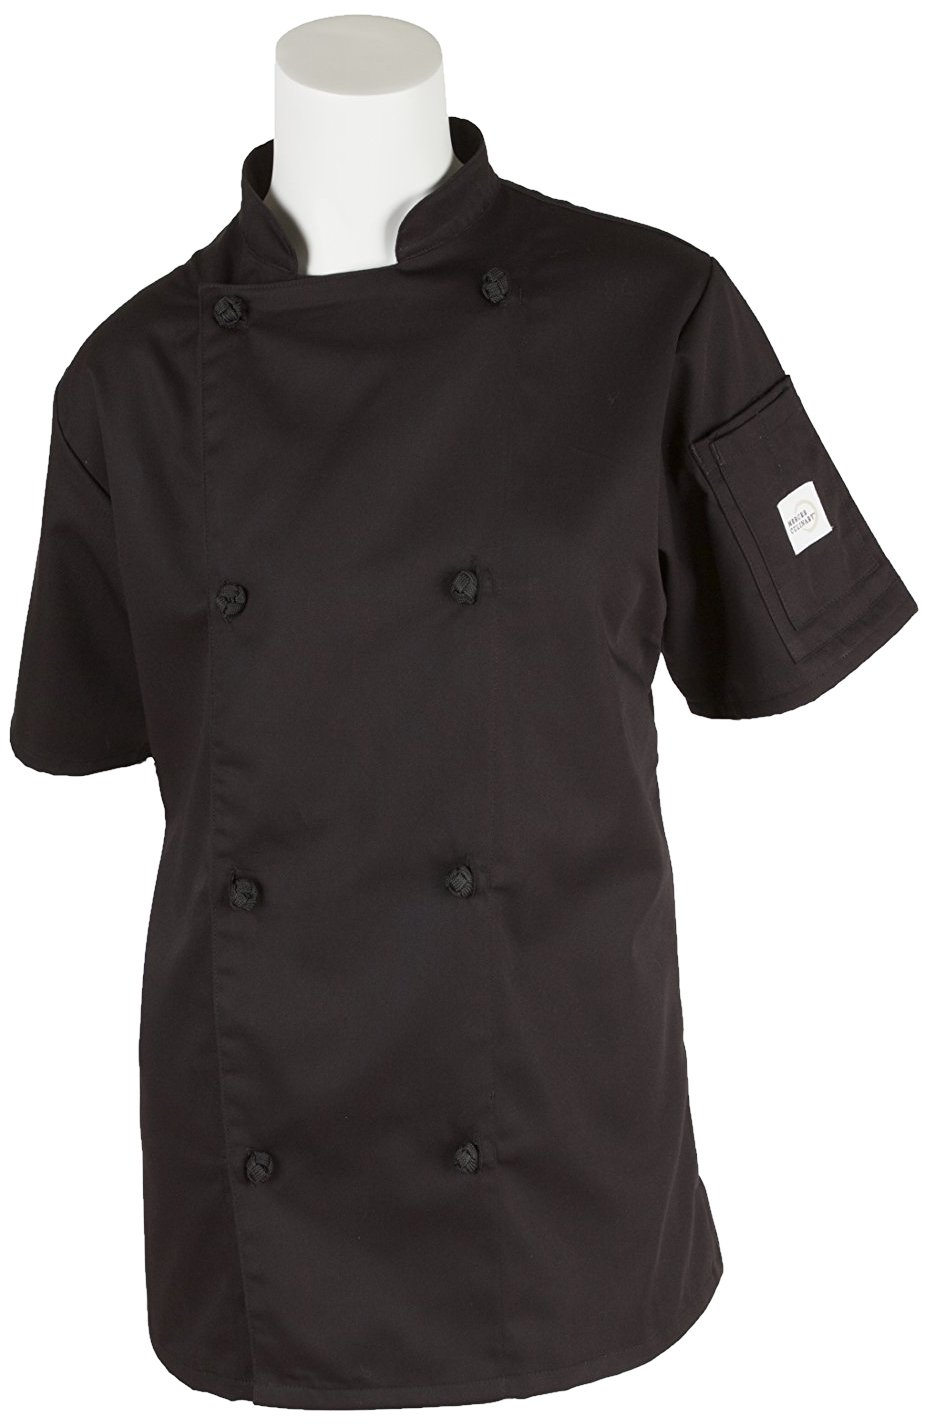 Mercer Culinary M61042BKL Genesis Women's Short Sleeve Chef Jacket with Cloth Knot Buttons, Large, Black by Mercer Culinary